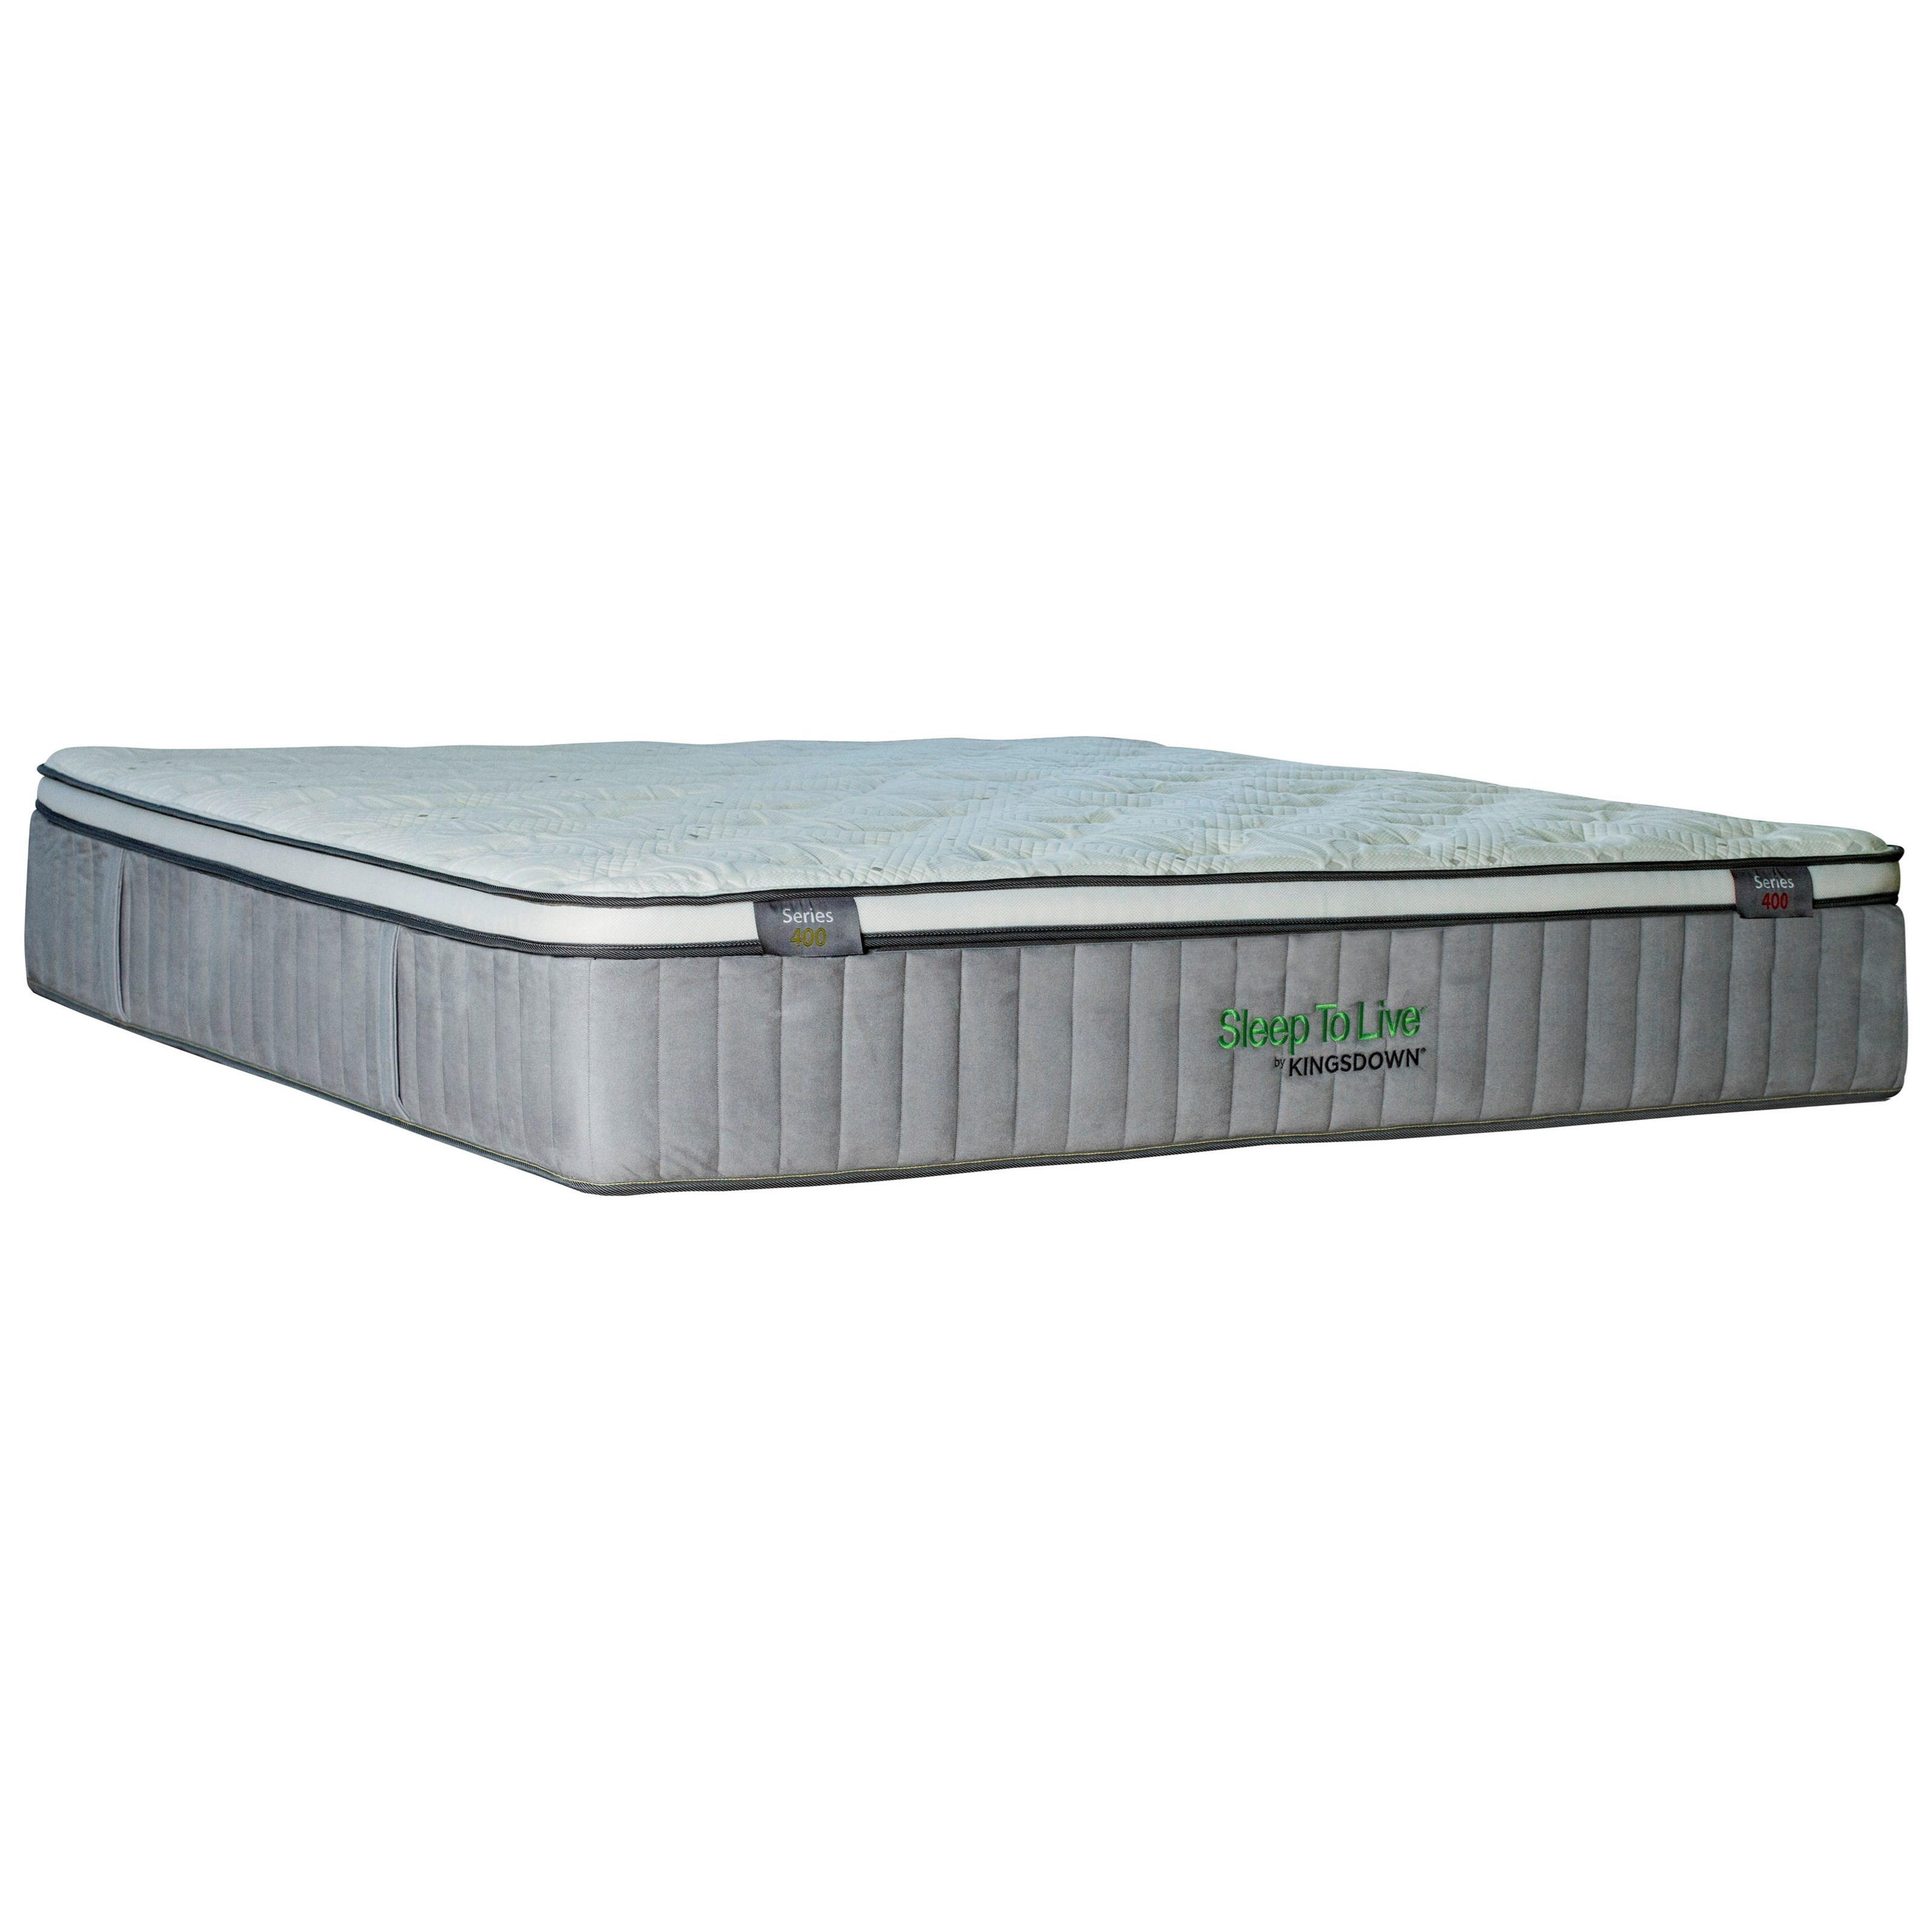 "Kingsdown 5234 Green Series 400 Twin XL 14 1/2"" Plush ET Luxury Mattress - Item Number: 5234-TXL"